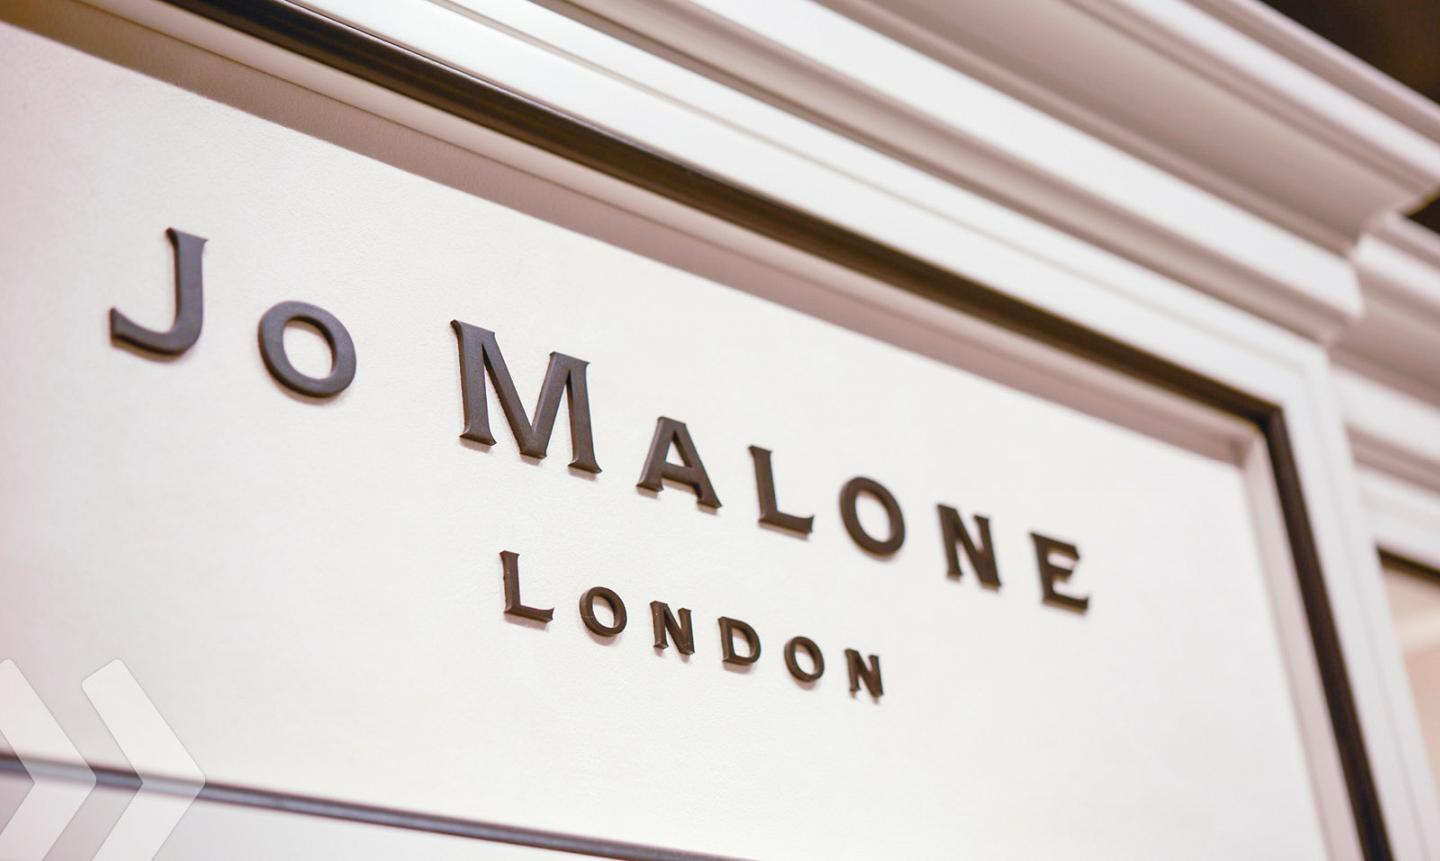 Jo Malone Shop in Sho made by ARNO 09